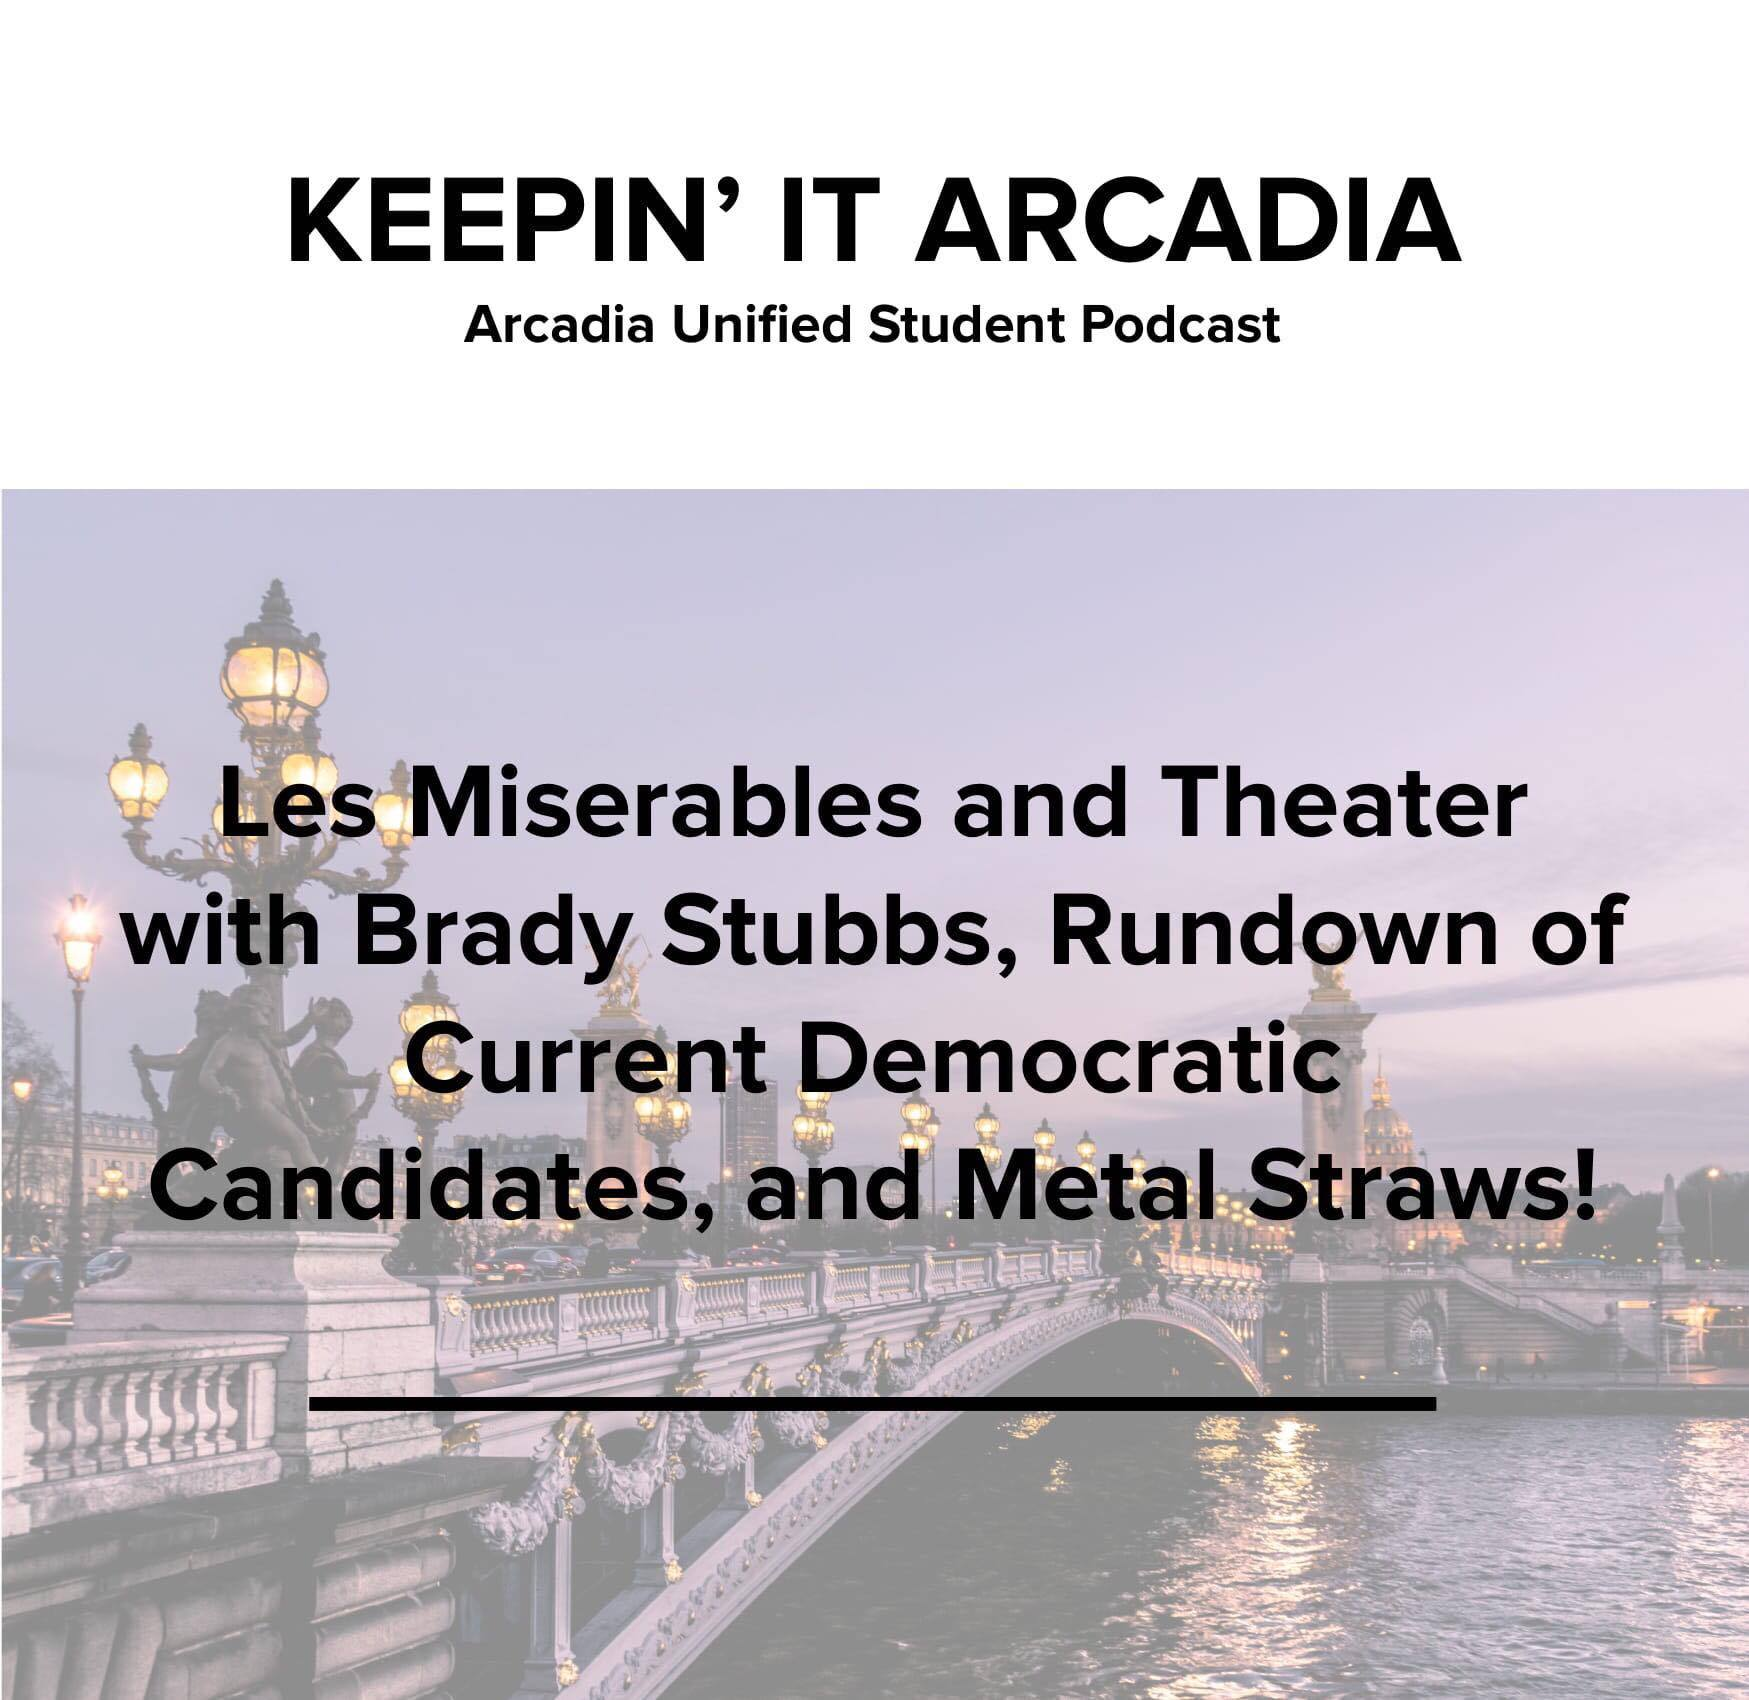 S2 #23 Les Miserables and Theatre with Brady Stubbs, Rundown of Current Democratic Candidates, and Metal Straws!